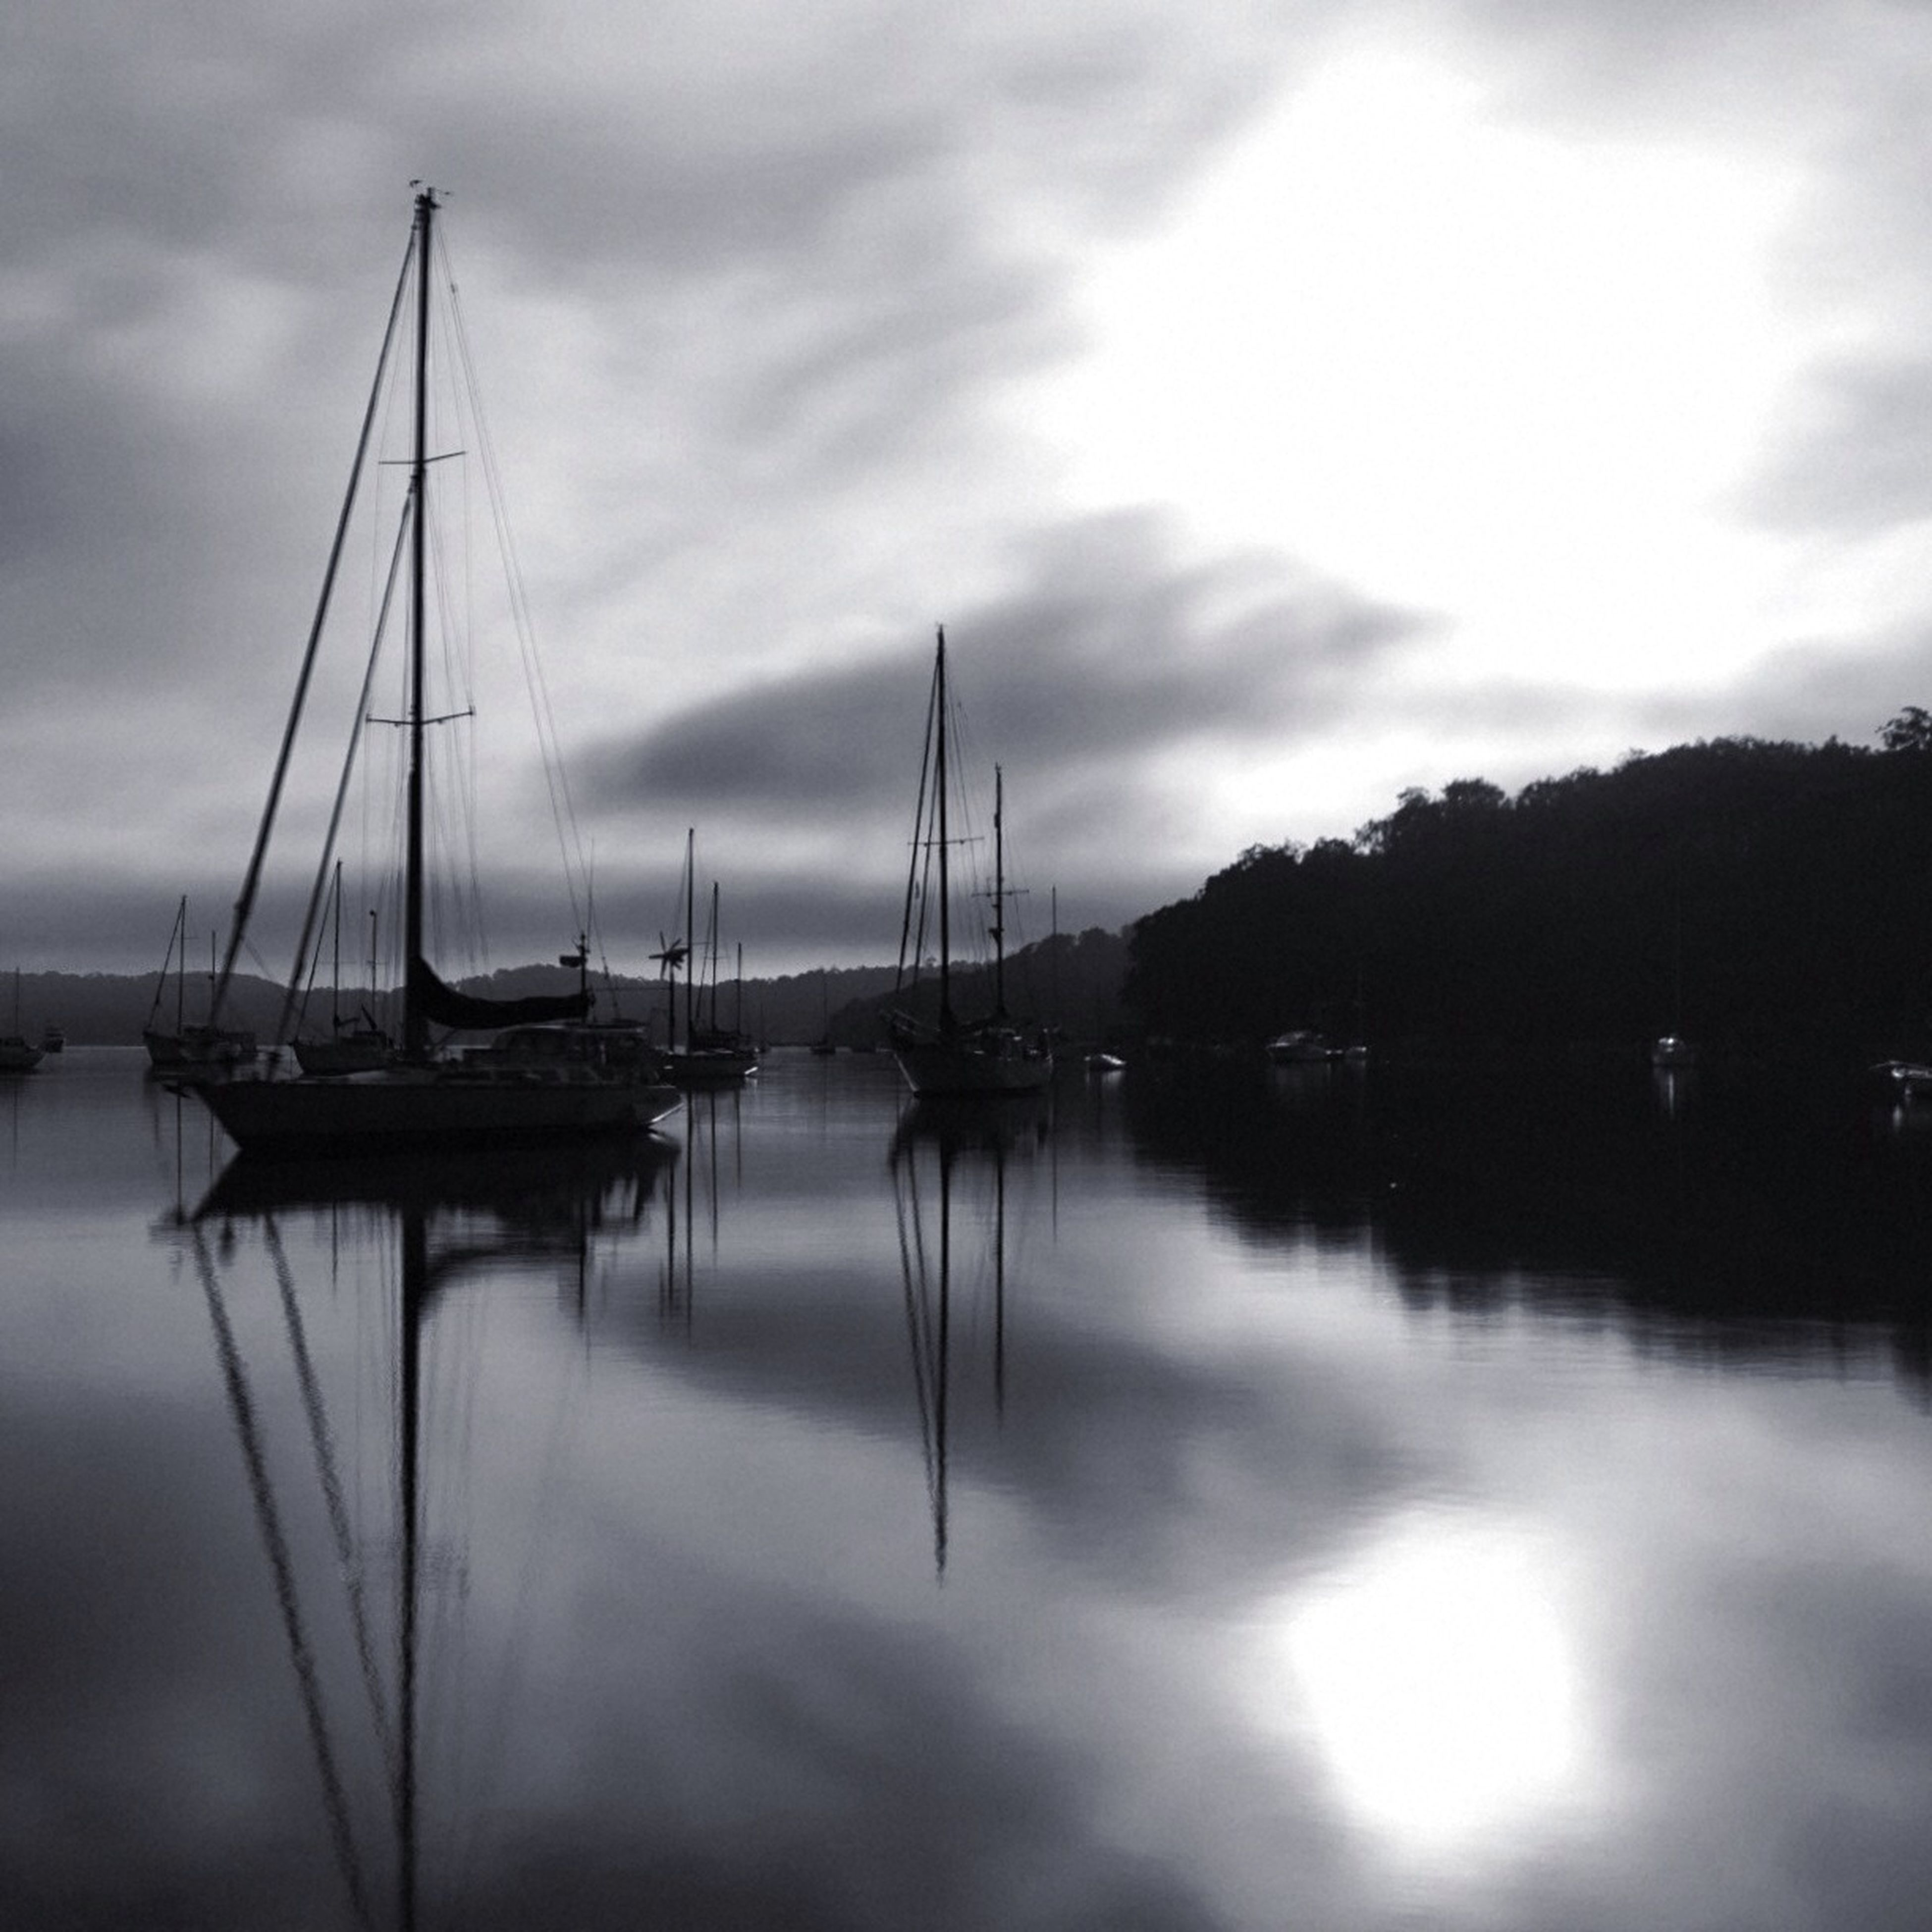 water, nautical vessel, sky, boat, transportation, moored, reflection, cloud - sky, mode of transport, tranquility, sea, tranquil scene, waterfront, mast, cloudy, lake, cloud, sunset, scenics, beauty in nature